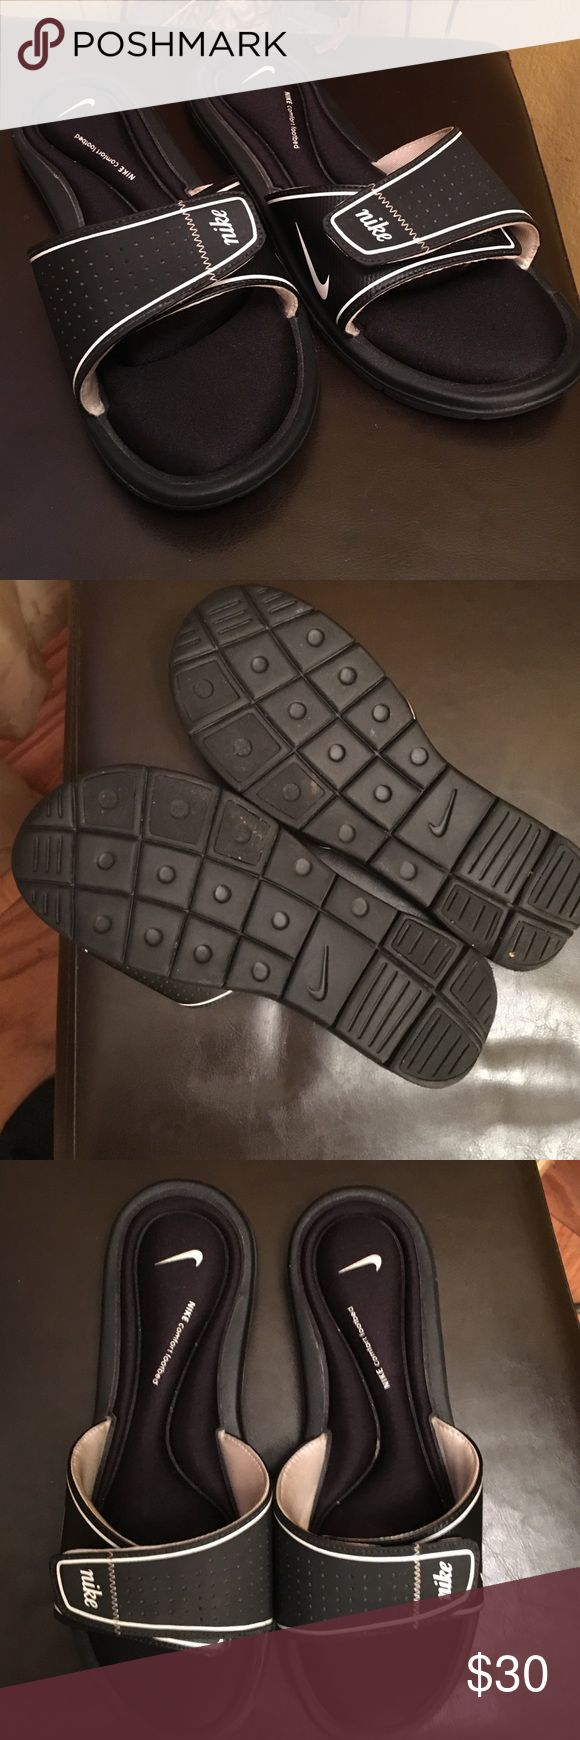 Authentic Nike slippers Authentic Nike slippers SUPER SUPER comfortable wore twice good condition can we can slippers or sandals to the gym or on vacation. Nike Shoes Slippers